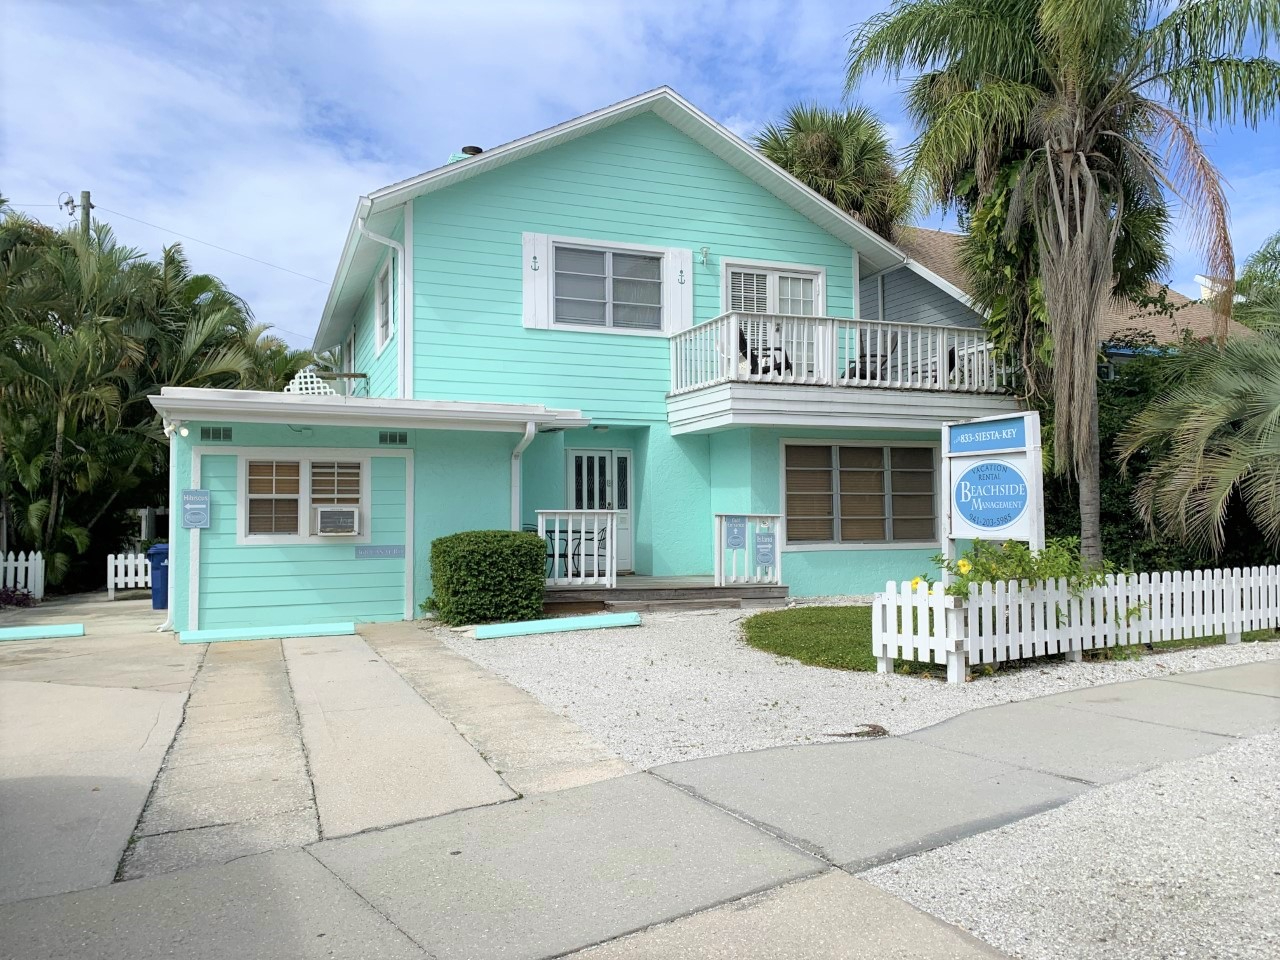 Hibiscus - Siesta Key Vacation Rentals